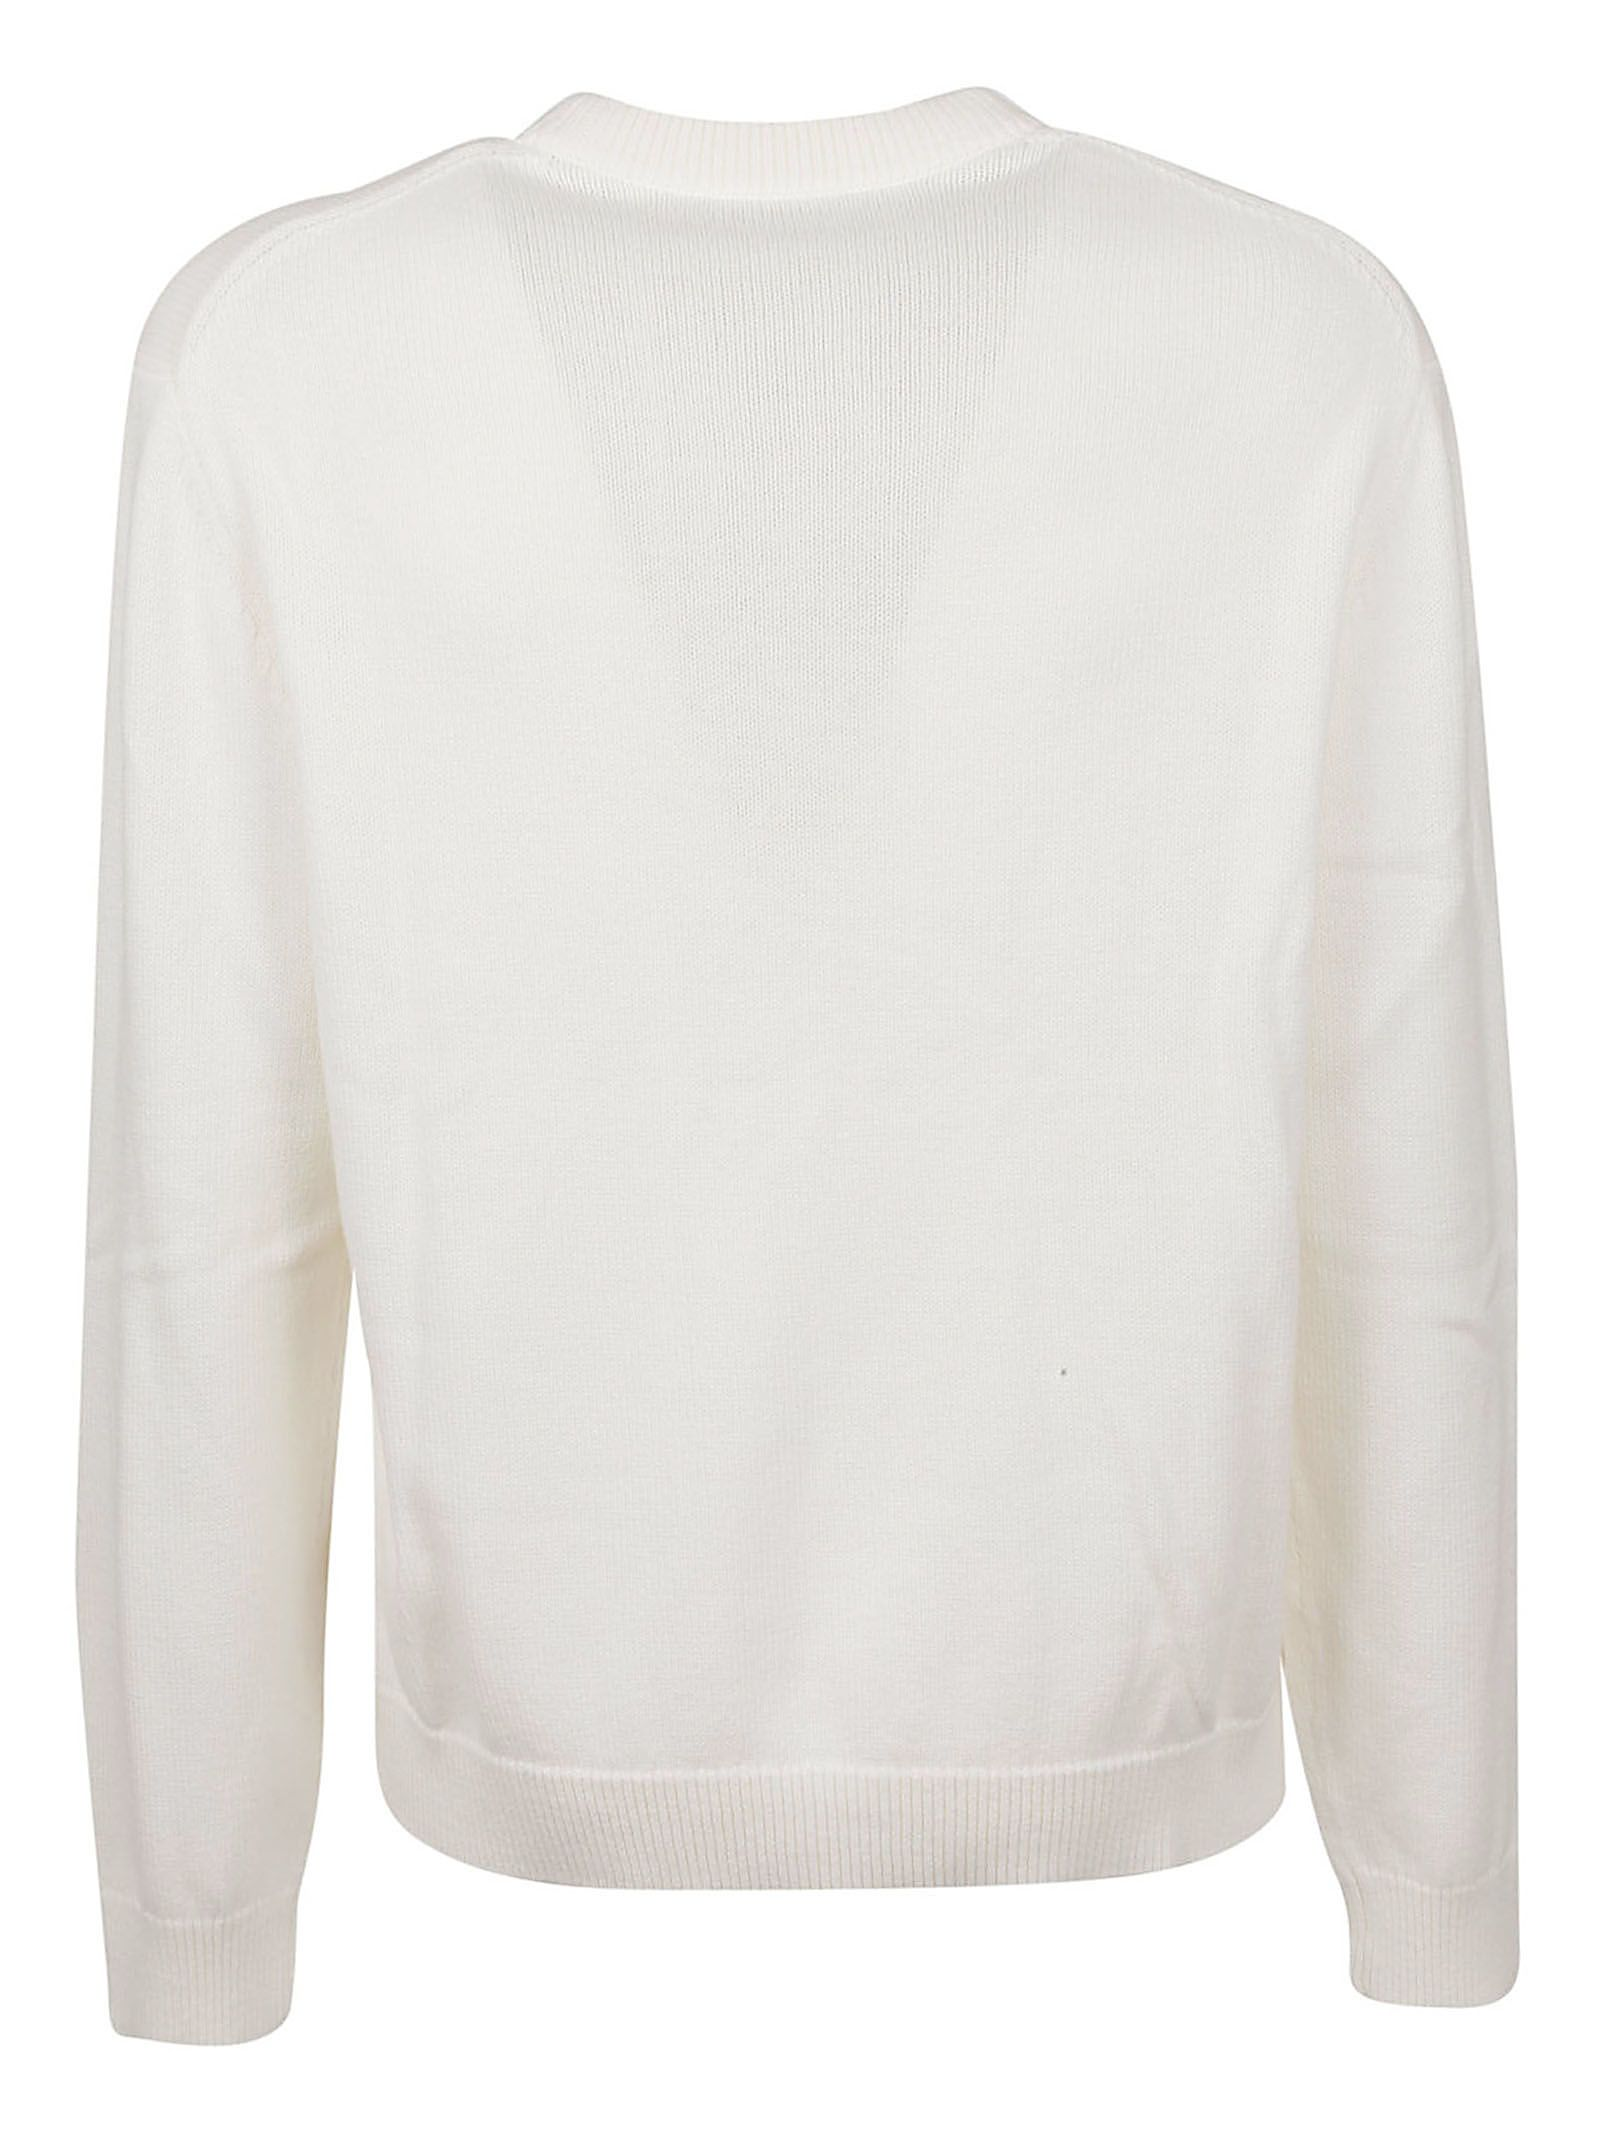 a0bc4a855 Kenzo Jumping Tiger Jumper - White Kenzo Jumping Tiger Jumper - White